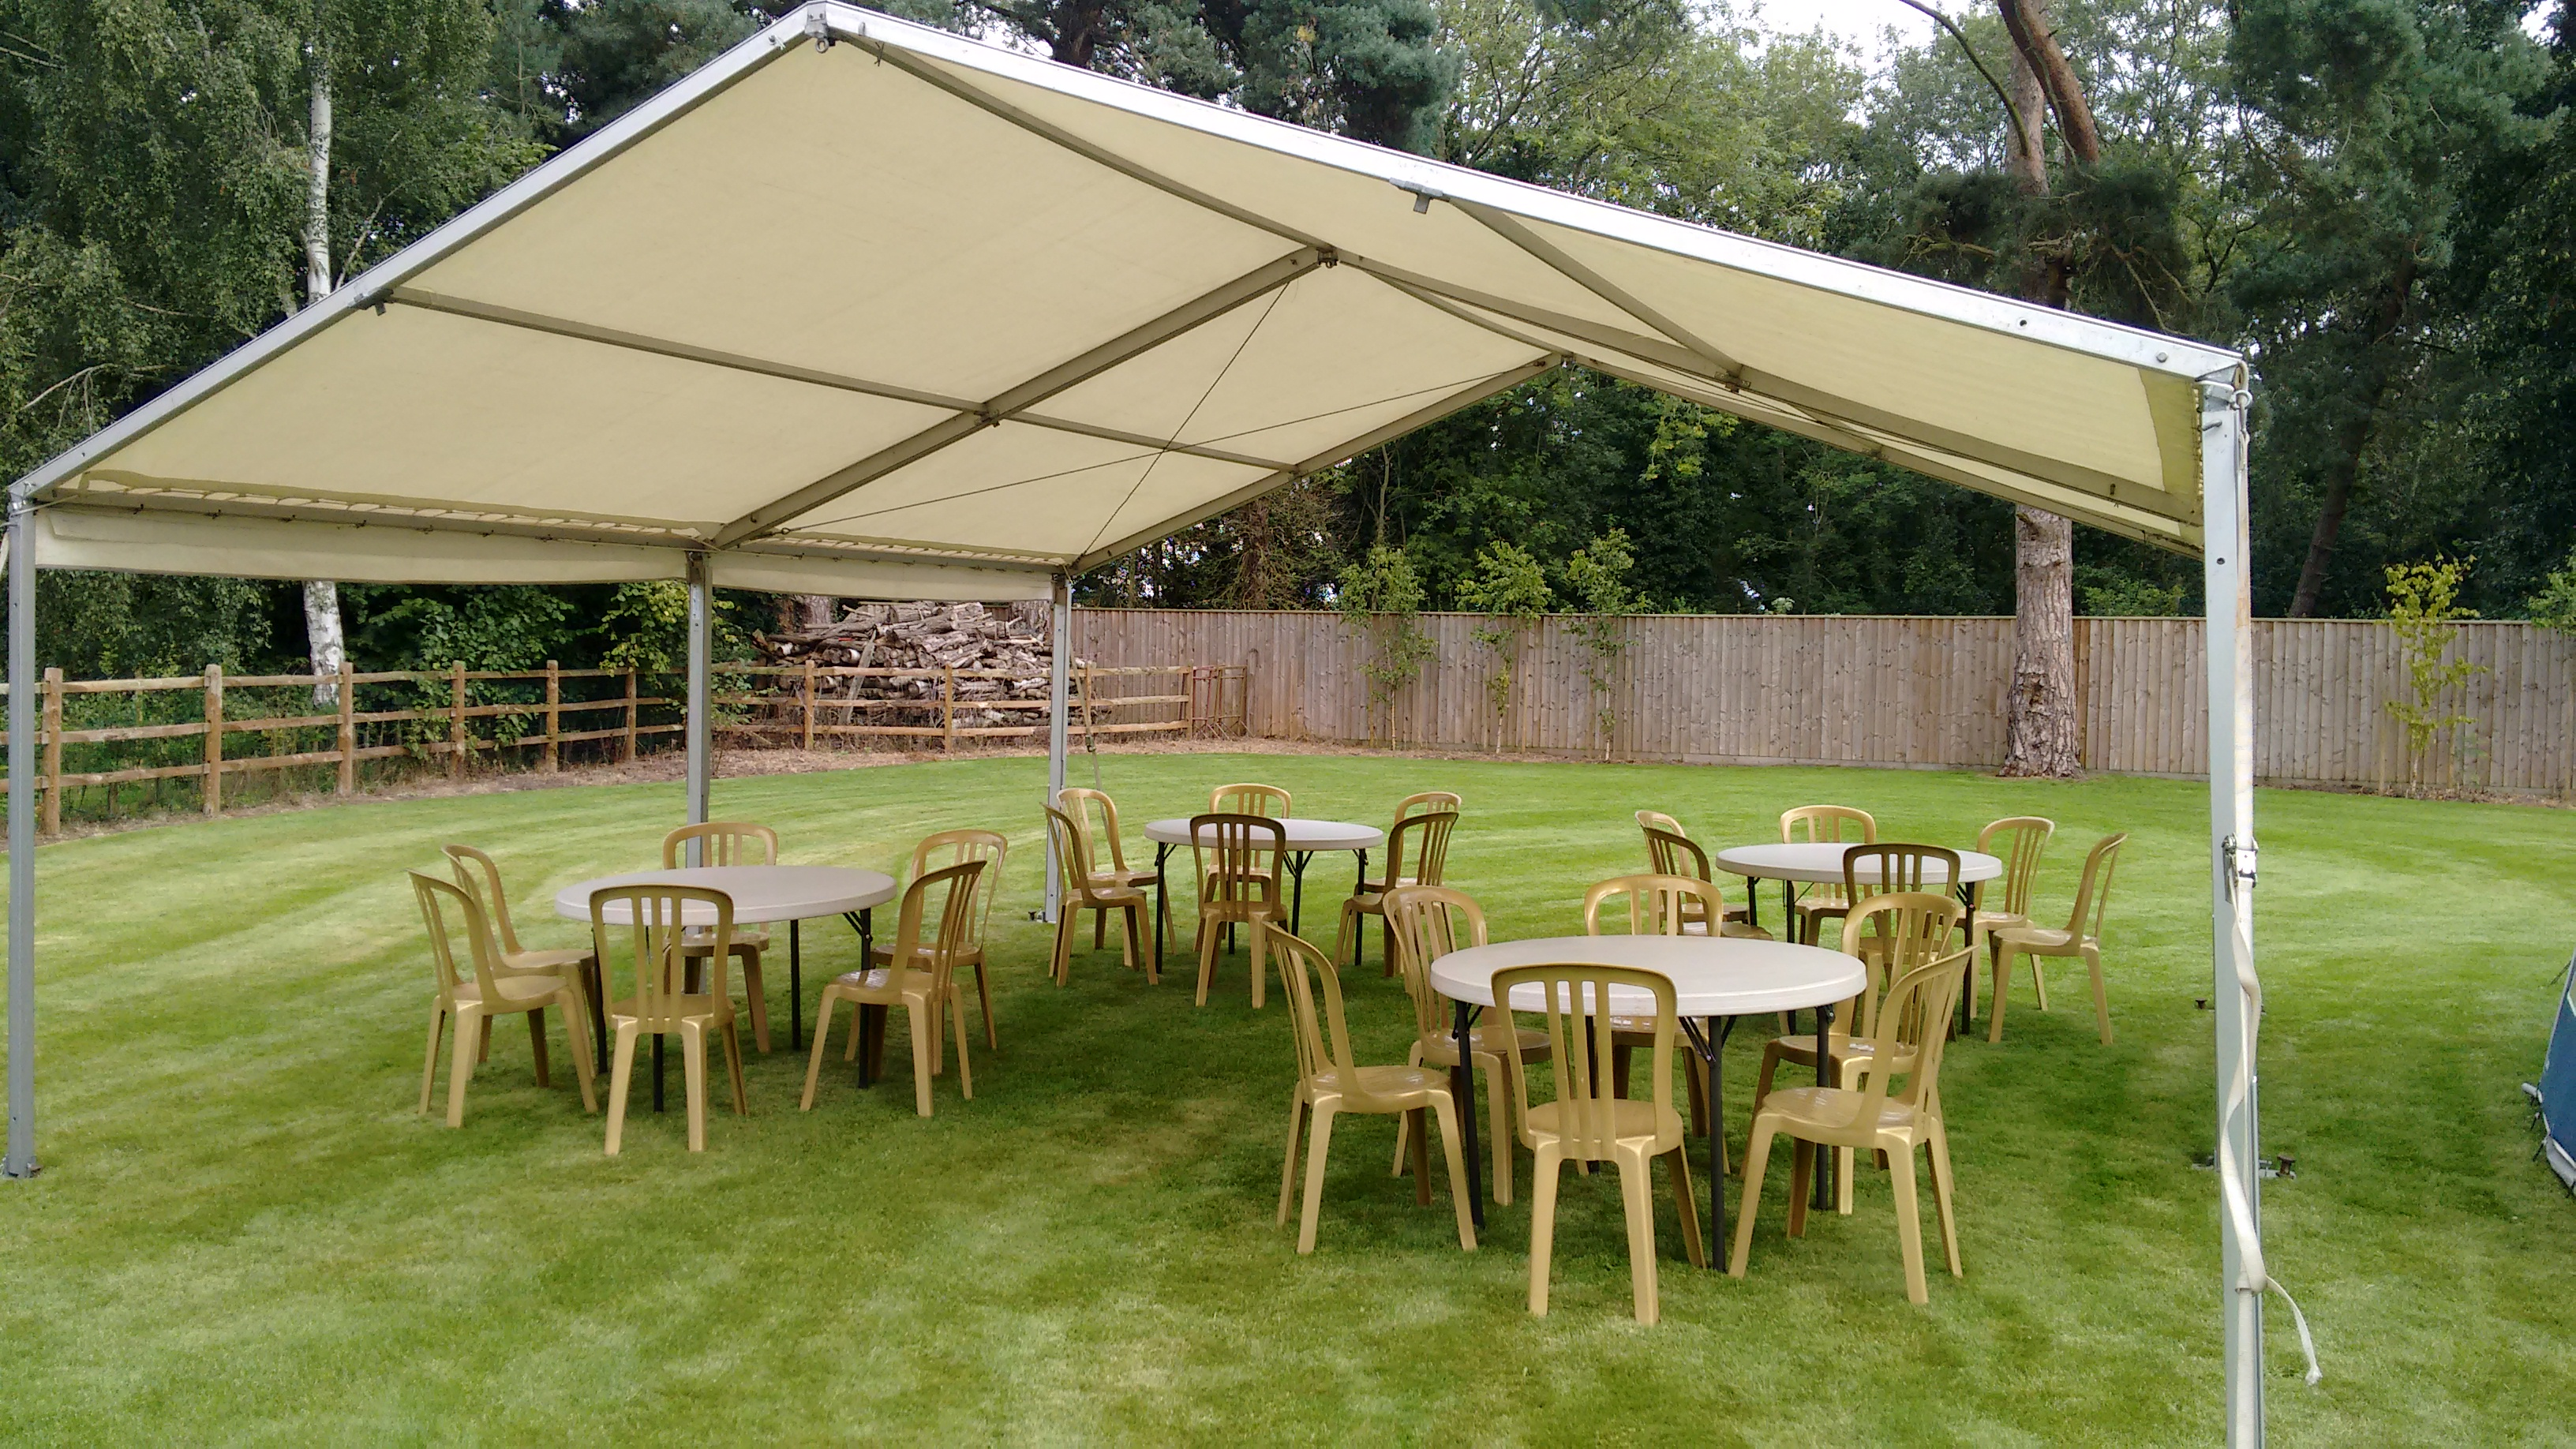 wedding chair cover hire kings lynn rentals tampa 6m x canopy dick ropa entertainments king 39s